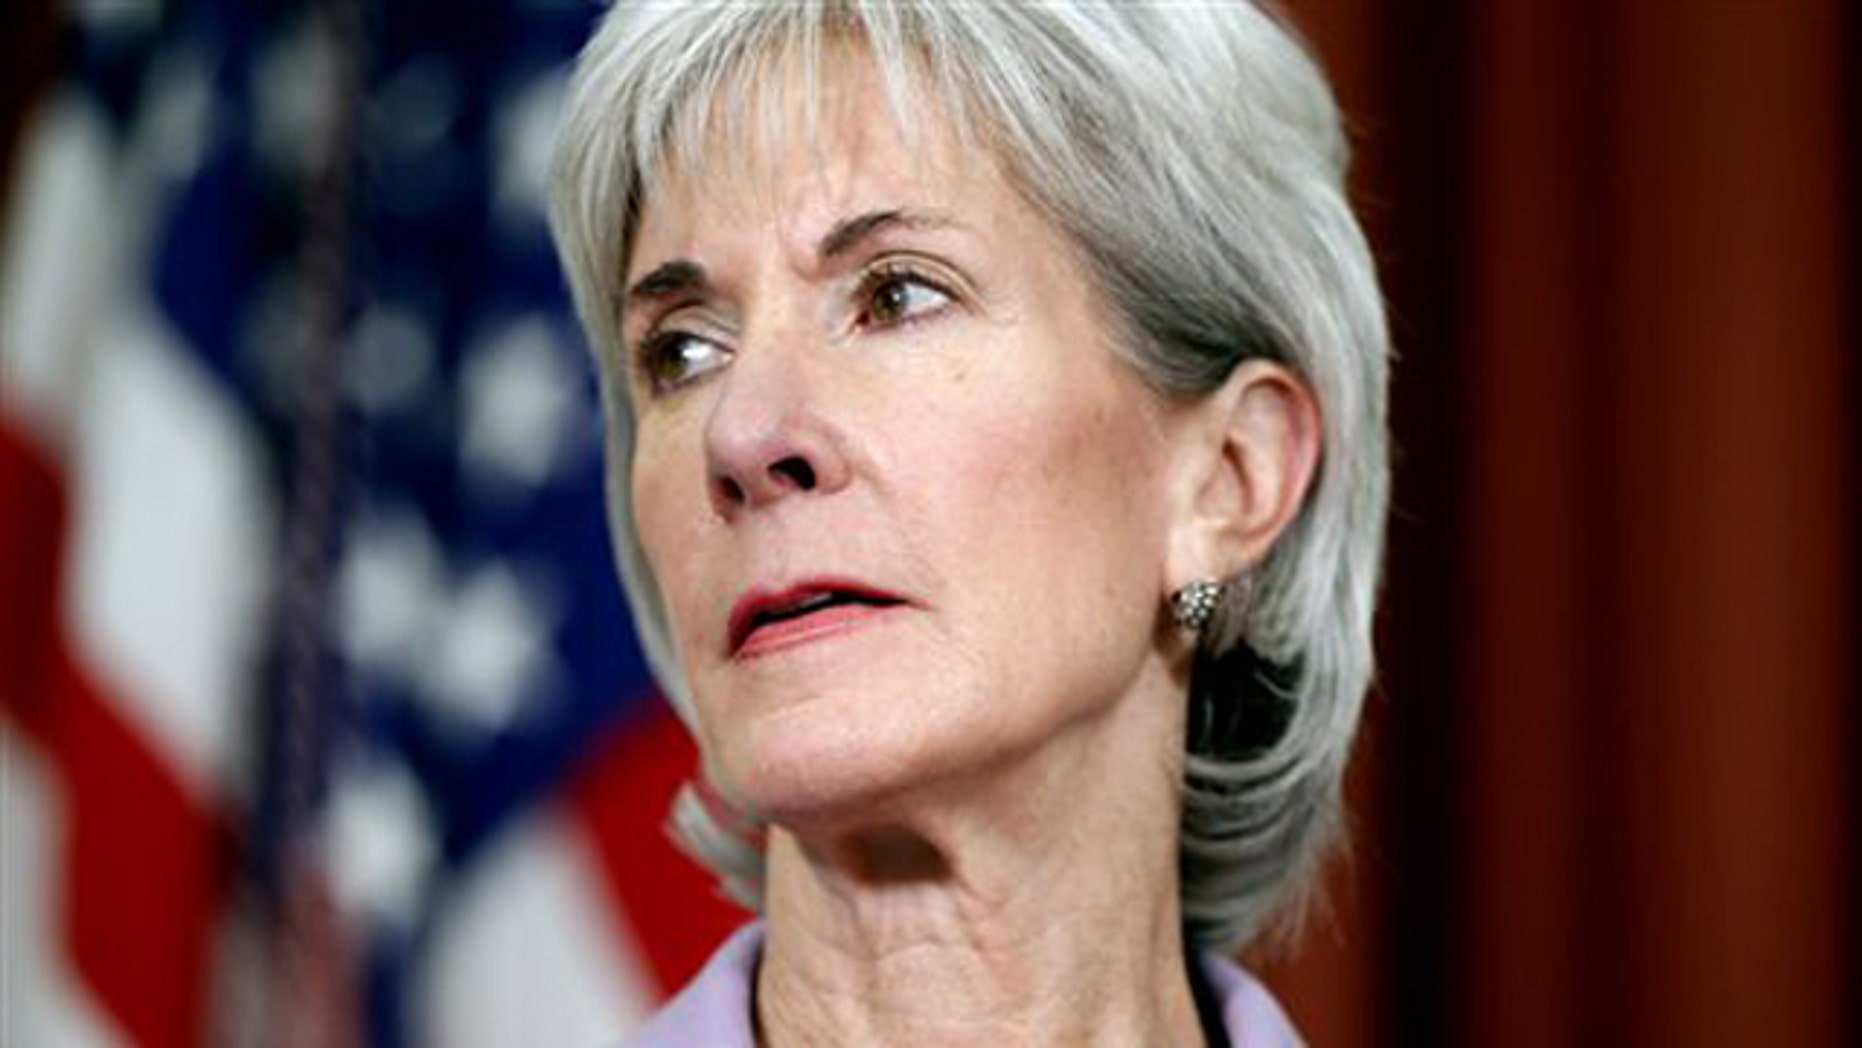 FILE: Oct. 31, 2011: Health and Human Services Secretary Kathleen Sebelius is seen in the Oval Office at the White House.